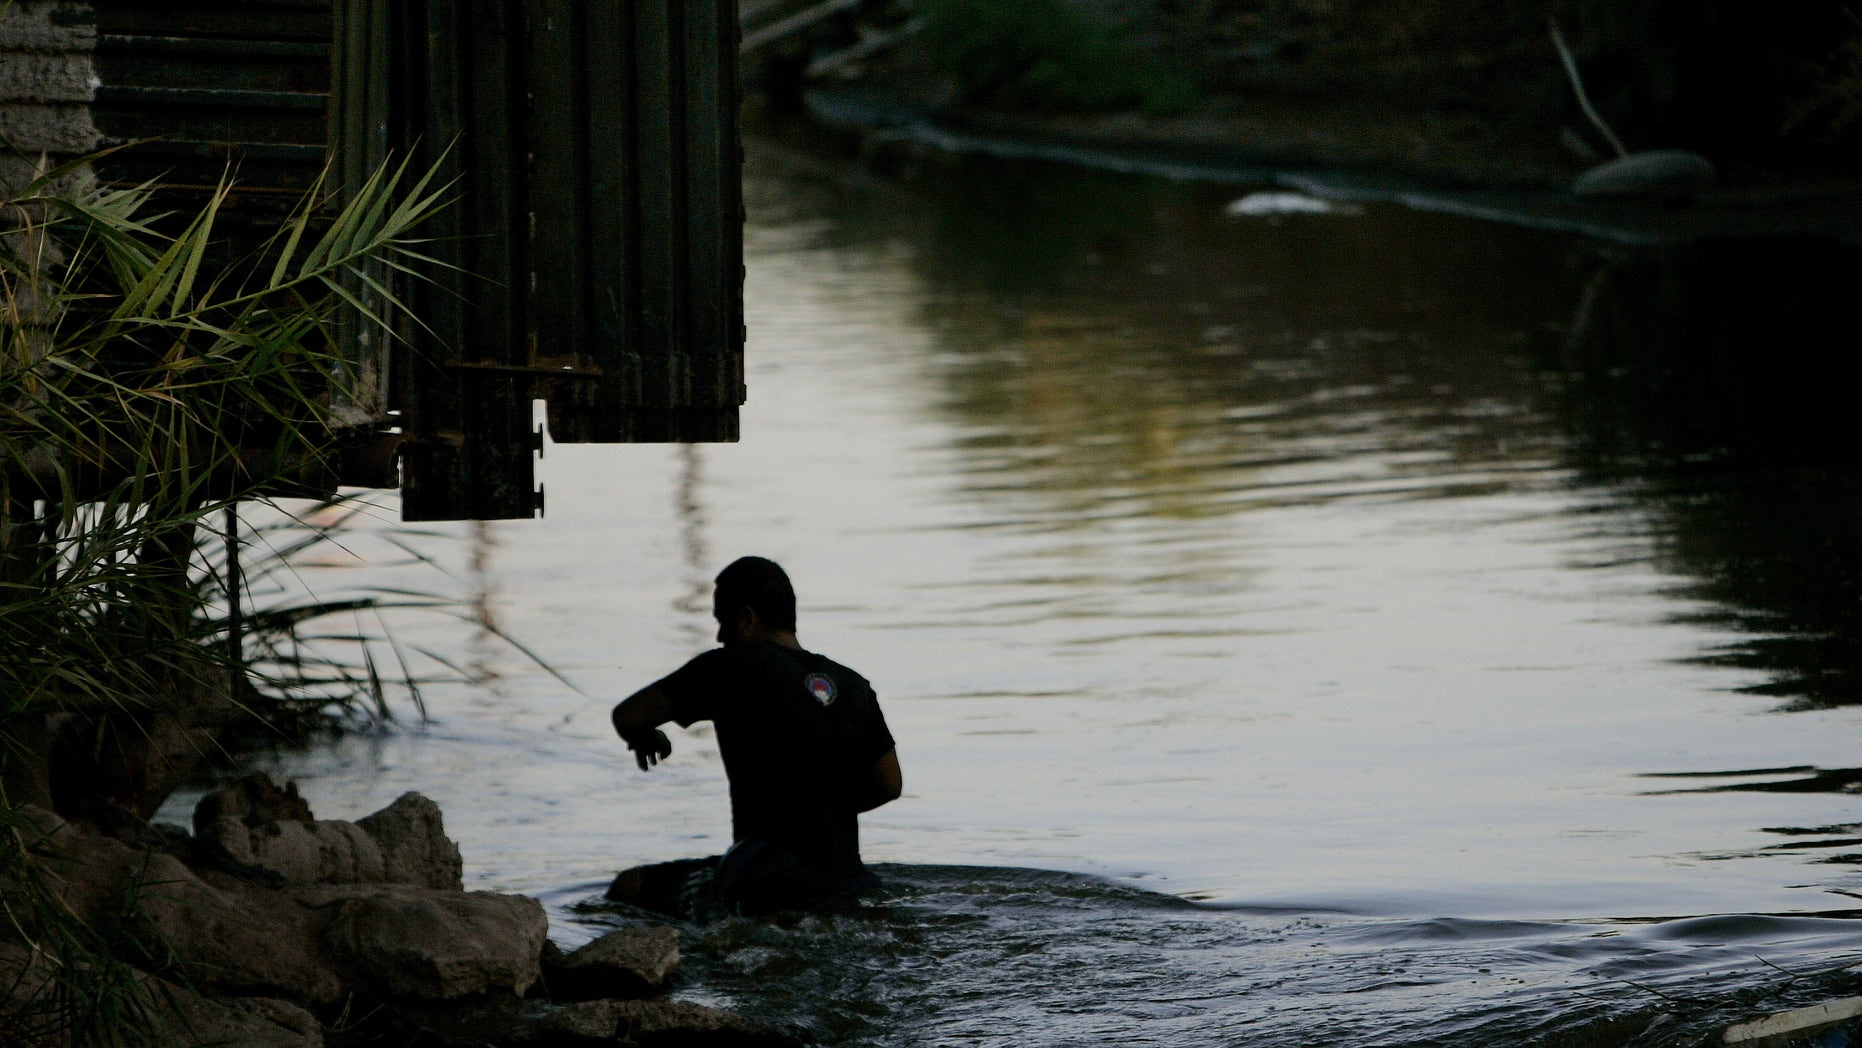 CALEXICO, CA - OCTOBER 9:  A migrant crosses the New River in Calexico, California October 9, 2007.  Immigration continues to be a hot topic among political contenders and economic watchdogs.  (Photo by Sandy Huffaker/Getty Images)